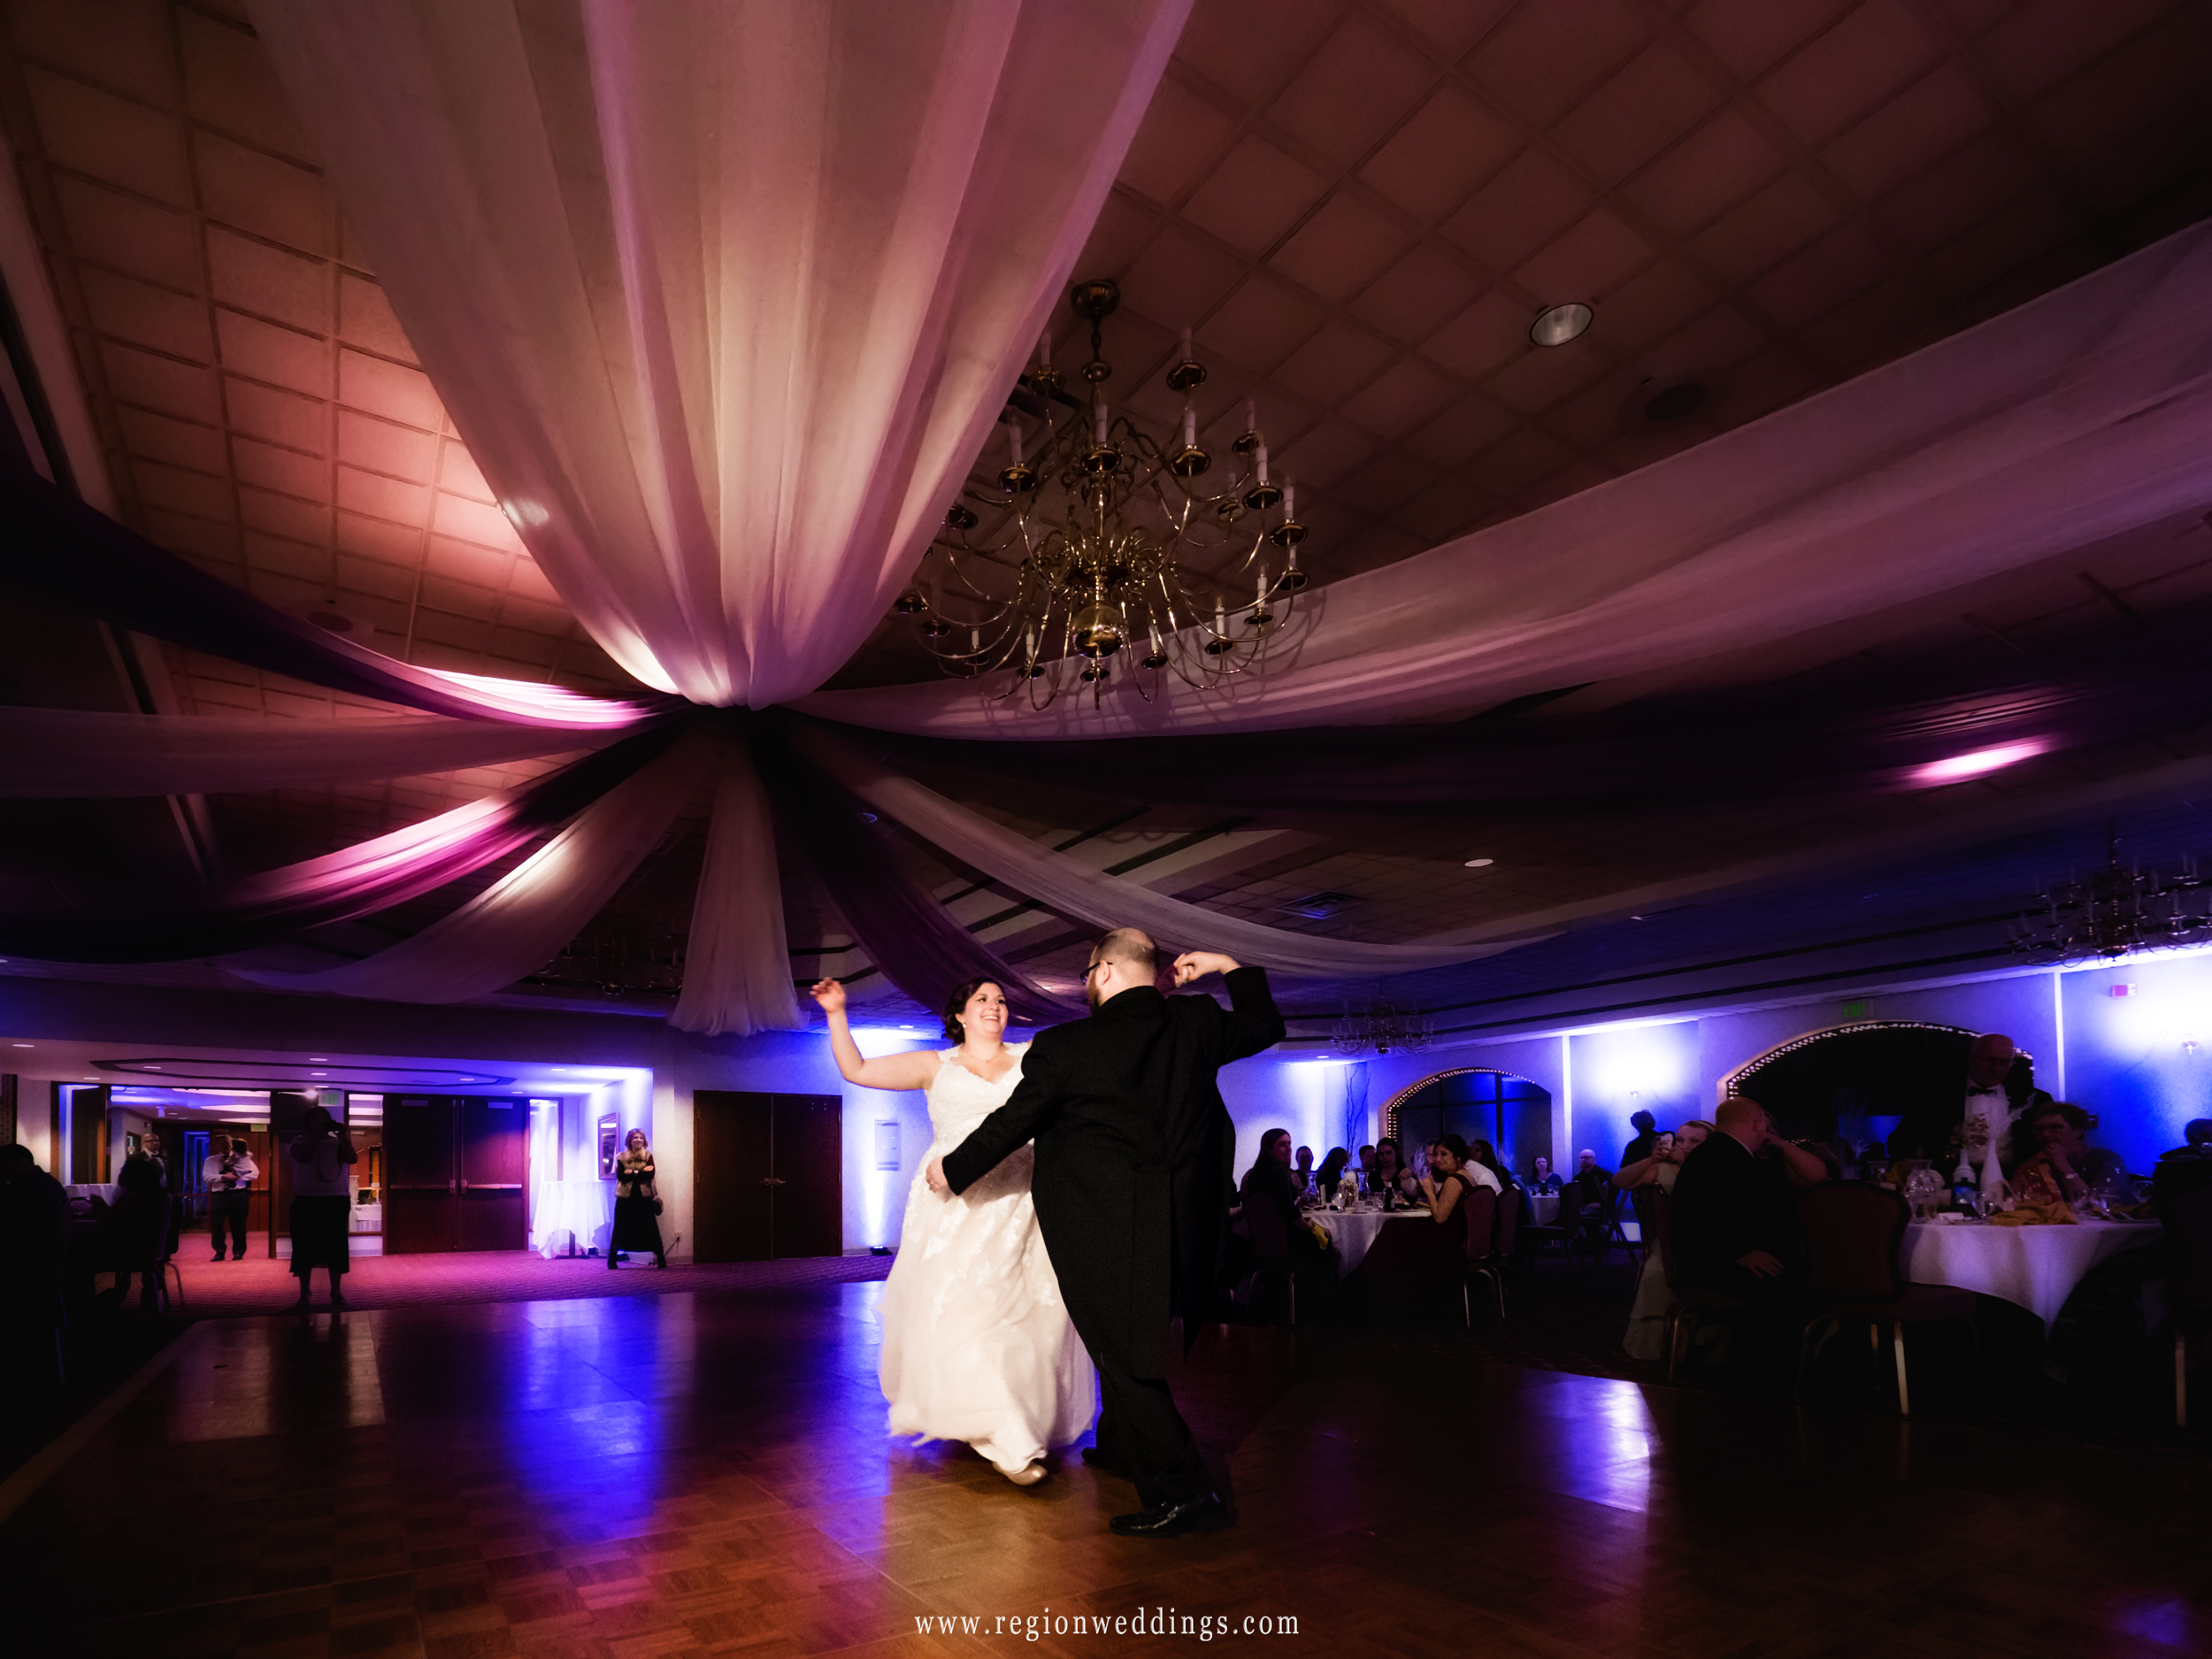 First dance at Cloister In The Woods in Munster, Indiana.